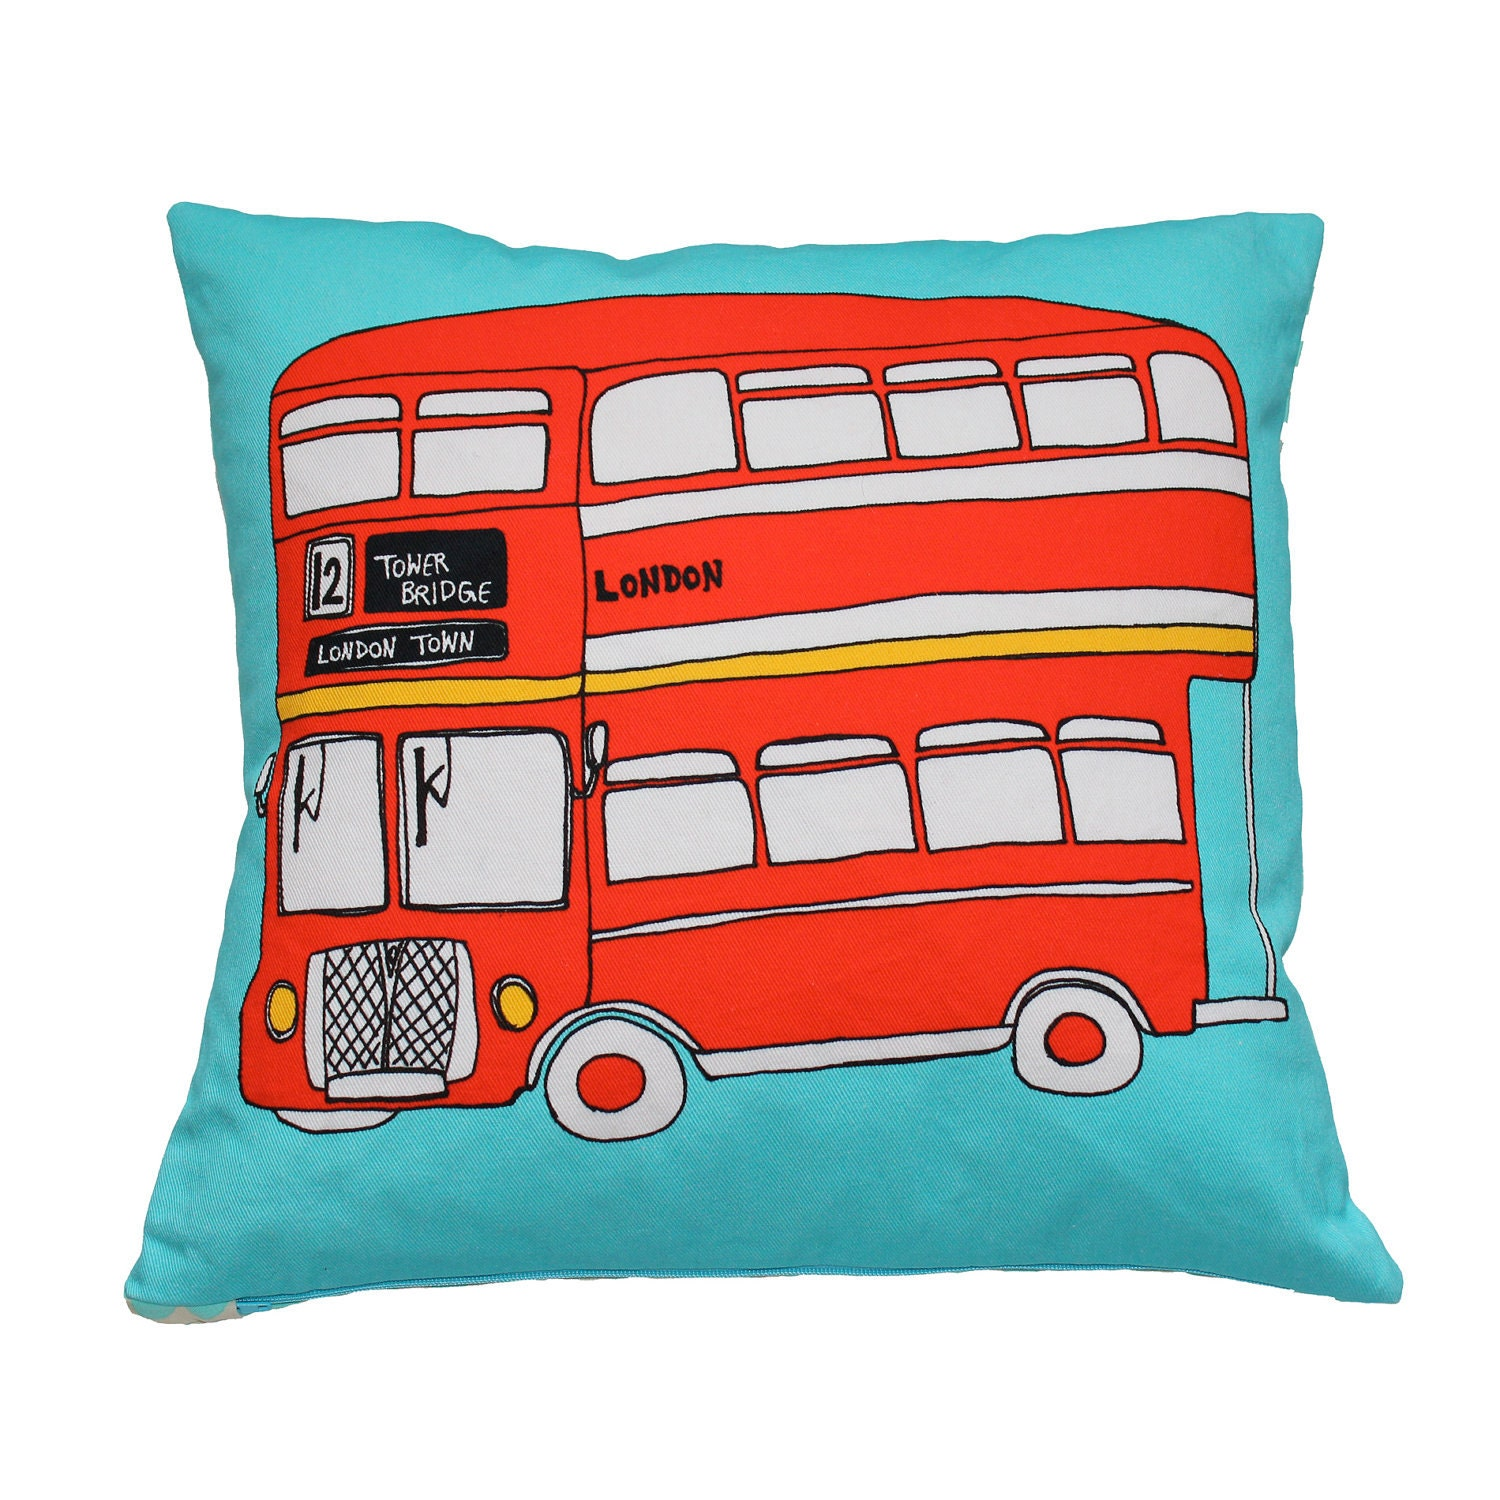 SALE - London Bus Illustration Cushion